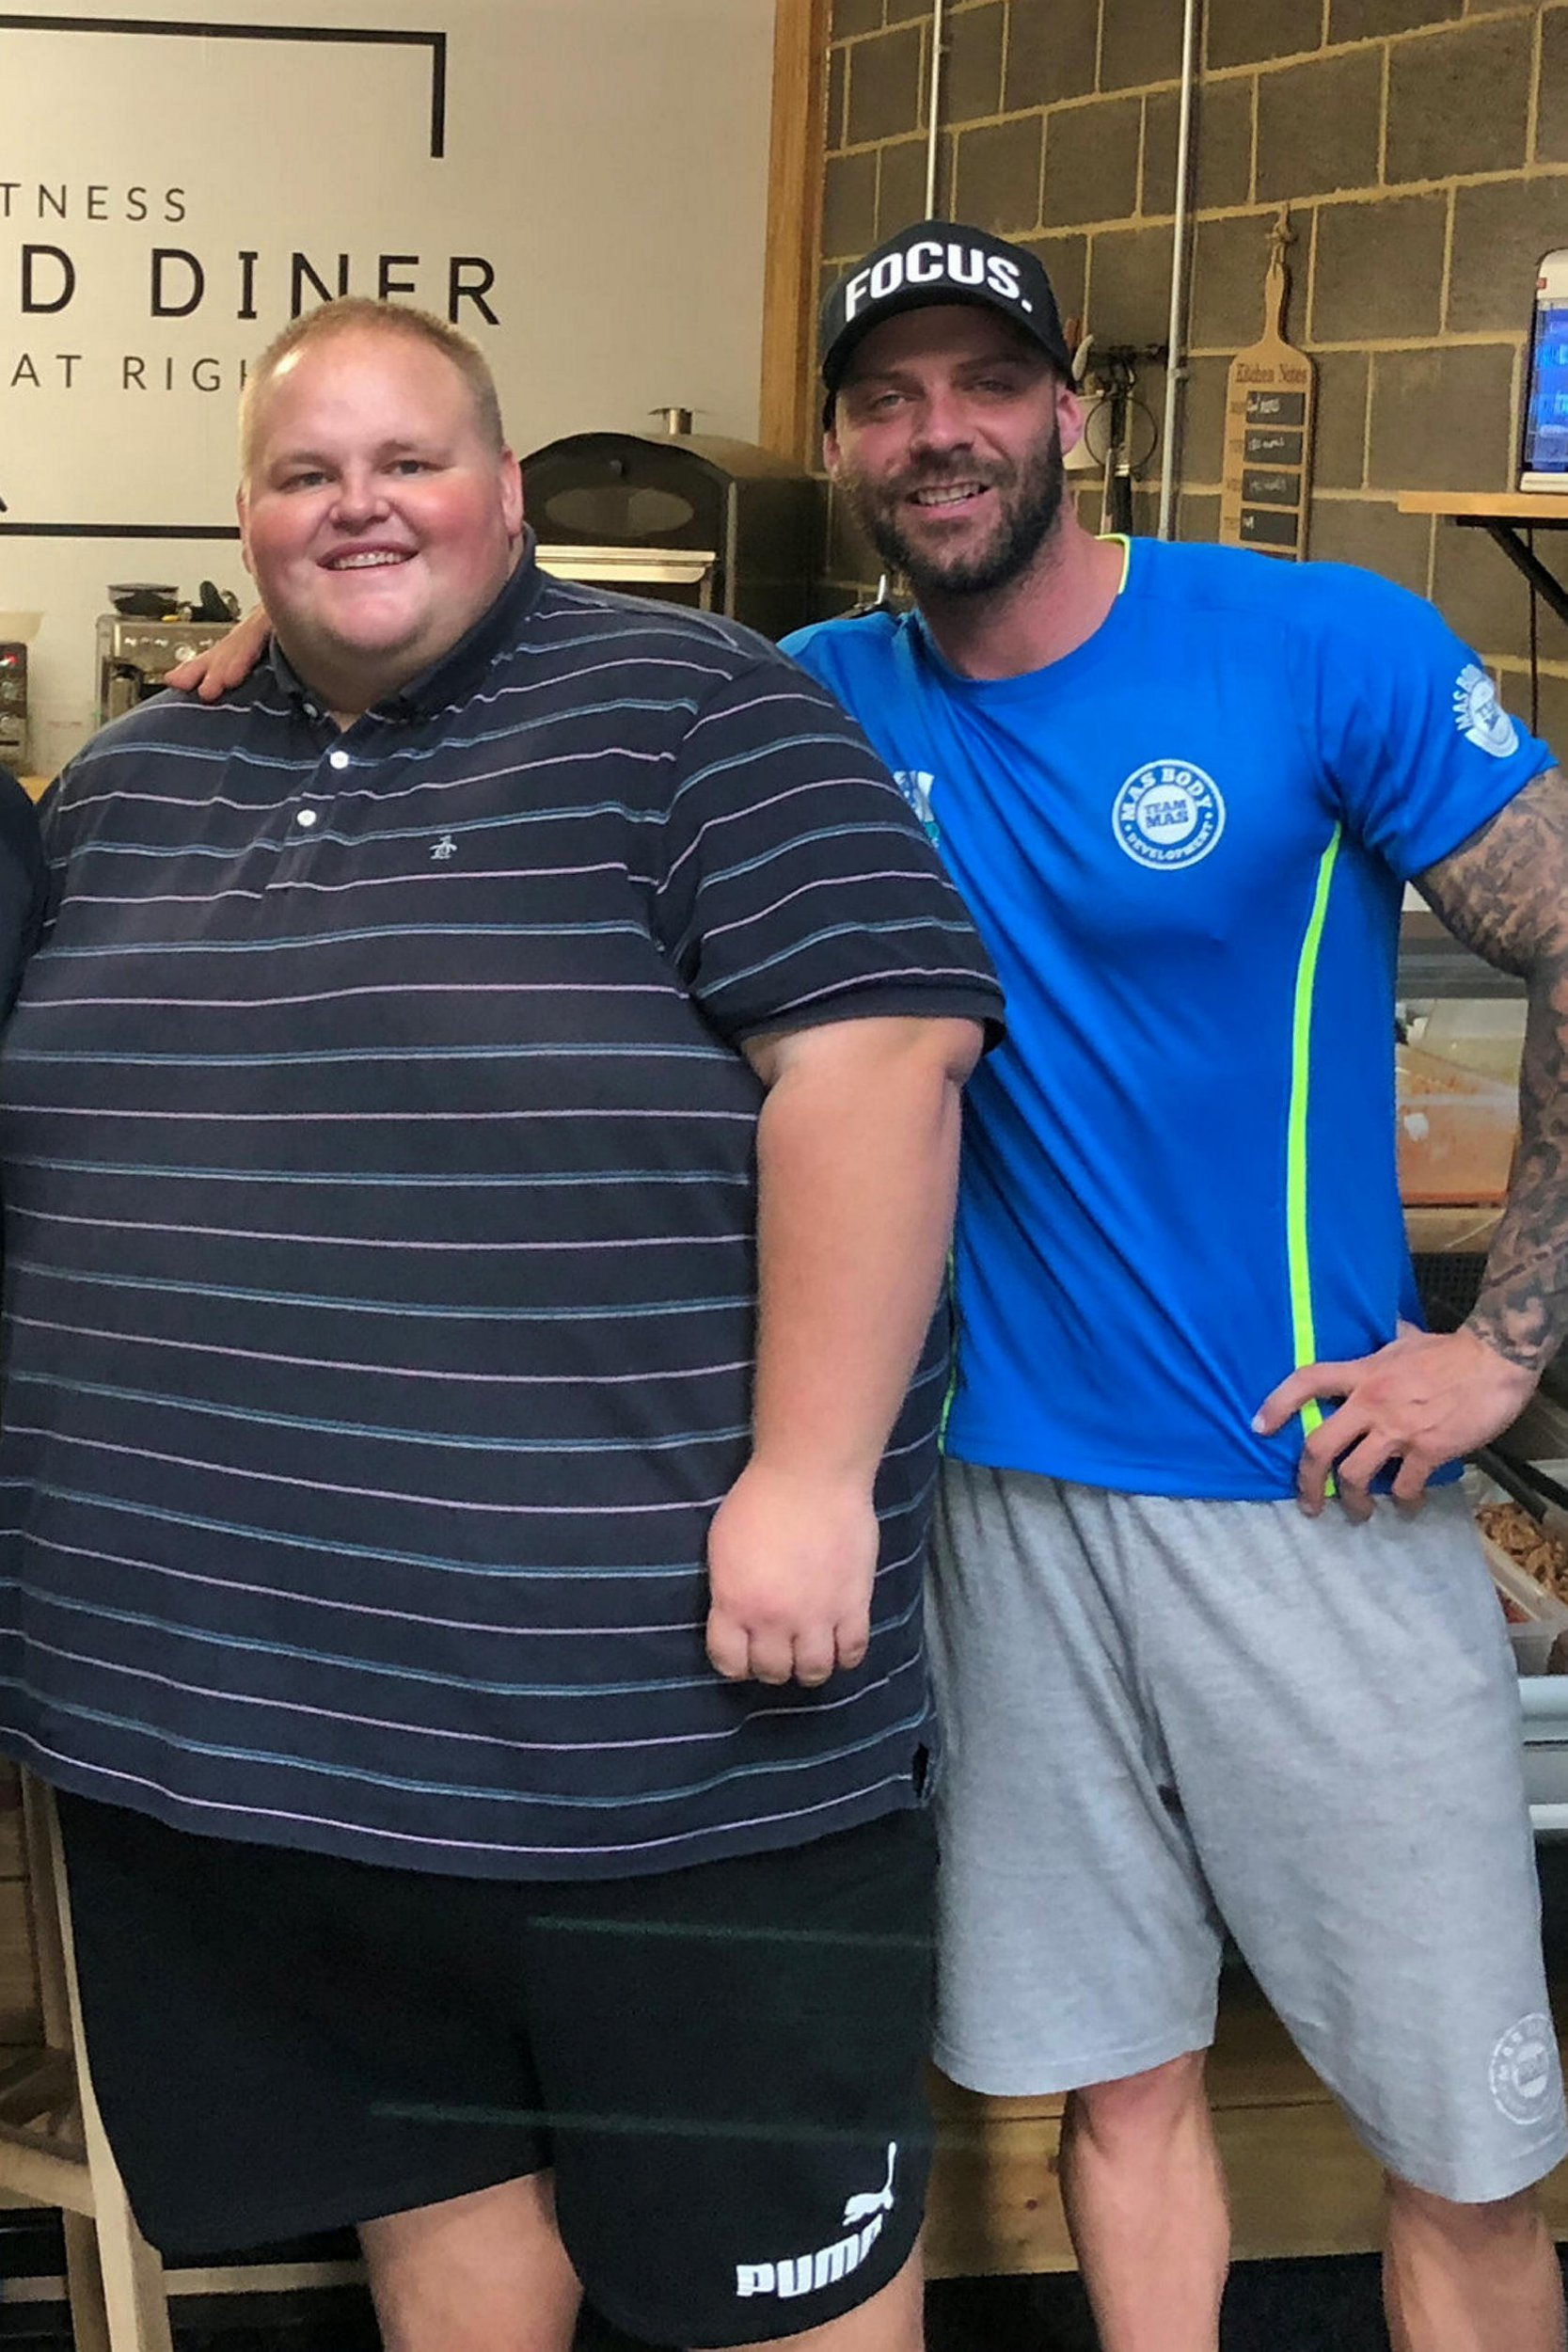 "Darren McClintock, 27 (L) with trainer, Mike Hind (R). Takeaways have been warned not to serve a morbidly obese man after doctors told him ""you're eating yourself to death"". See SWNS story SWLEFAT. Darren McClintock, 27, was eating pasties, chips and pies daily before being given the urgent wake up call when he was hospitalised with heart problems. Darren, known as 'Dibsy', has now embarked on a healthy new lifestyle with the help of award-winning personal trainer Mike Hind. The two of them have have gone around their hometown of Middlesbrough handing out posters to all Dibsy's favourite restaurants saying ""do not serve this man"". At the moment Dibsy has to book two seats on planes and order specially sized clothing that costs extra. He was served the wake up call after being admitted to hospital because his heart was beating too fast, when he says he could have died."